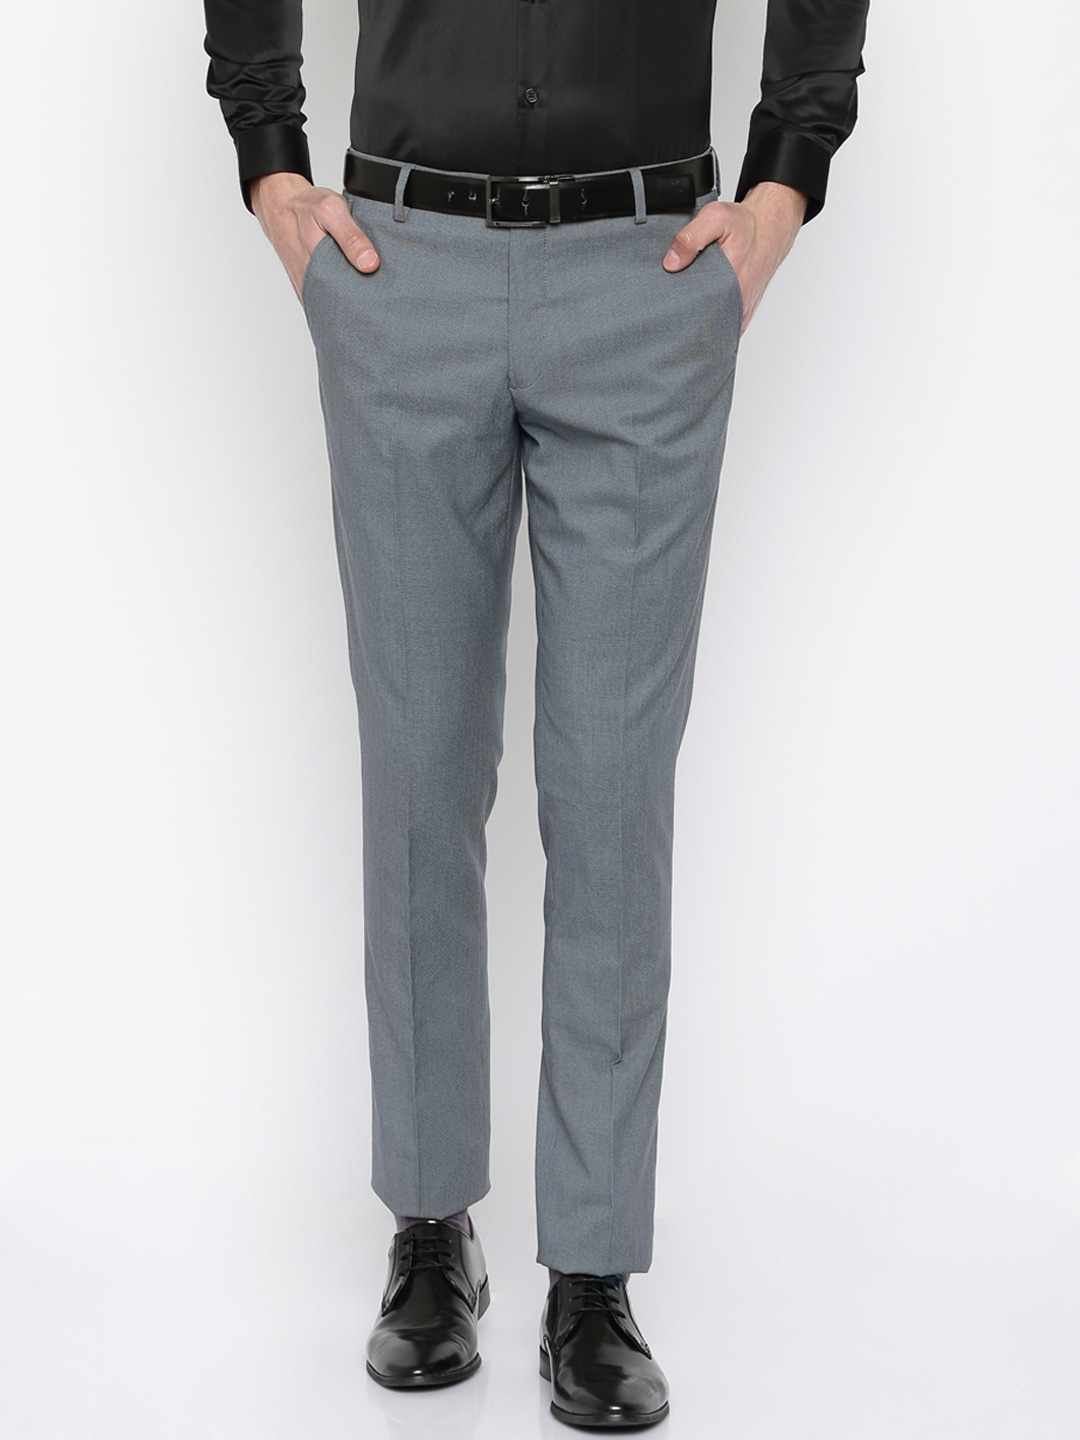 Formal Pants Design For Men | Www.imgkid.com - The Image Kid Has It!